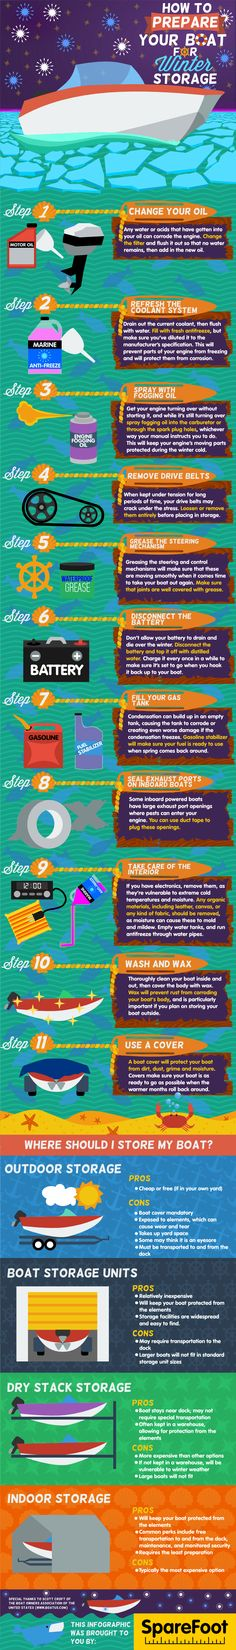 Informative inforgraphic on how to #winterize your #boat. Summer is coming to an end and some of our friends further north might need some tips on getting their #boat ready for winter.